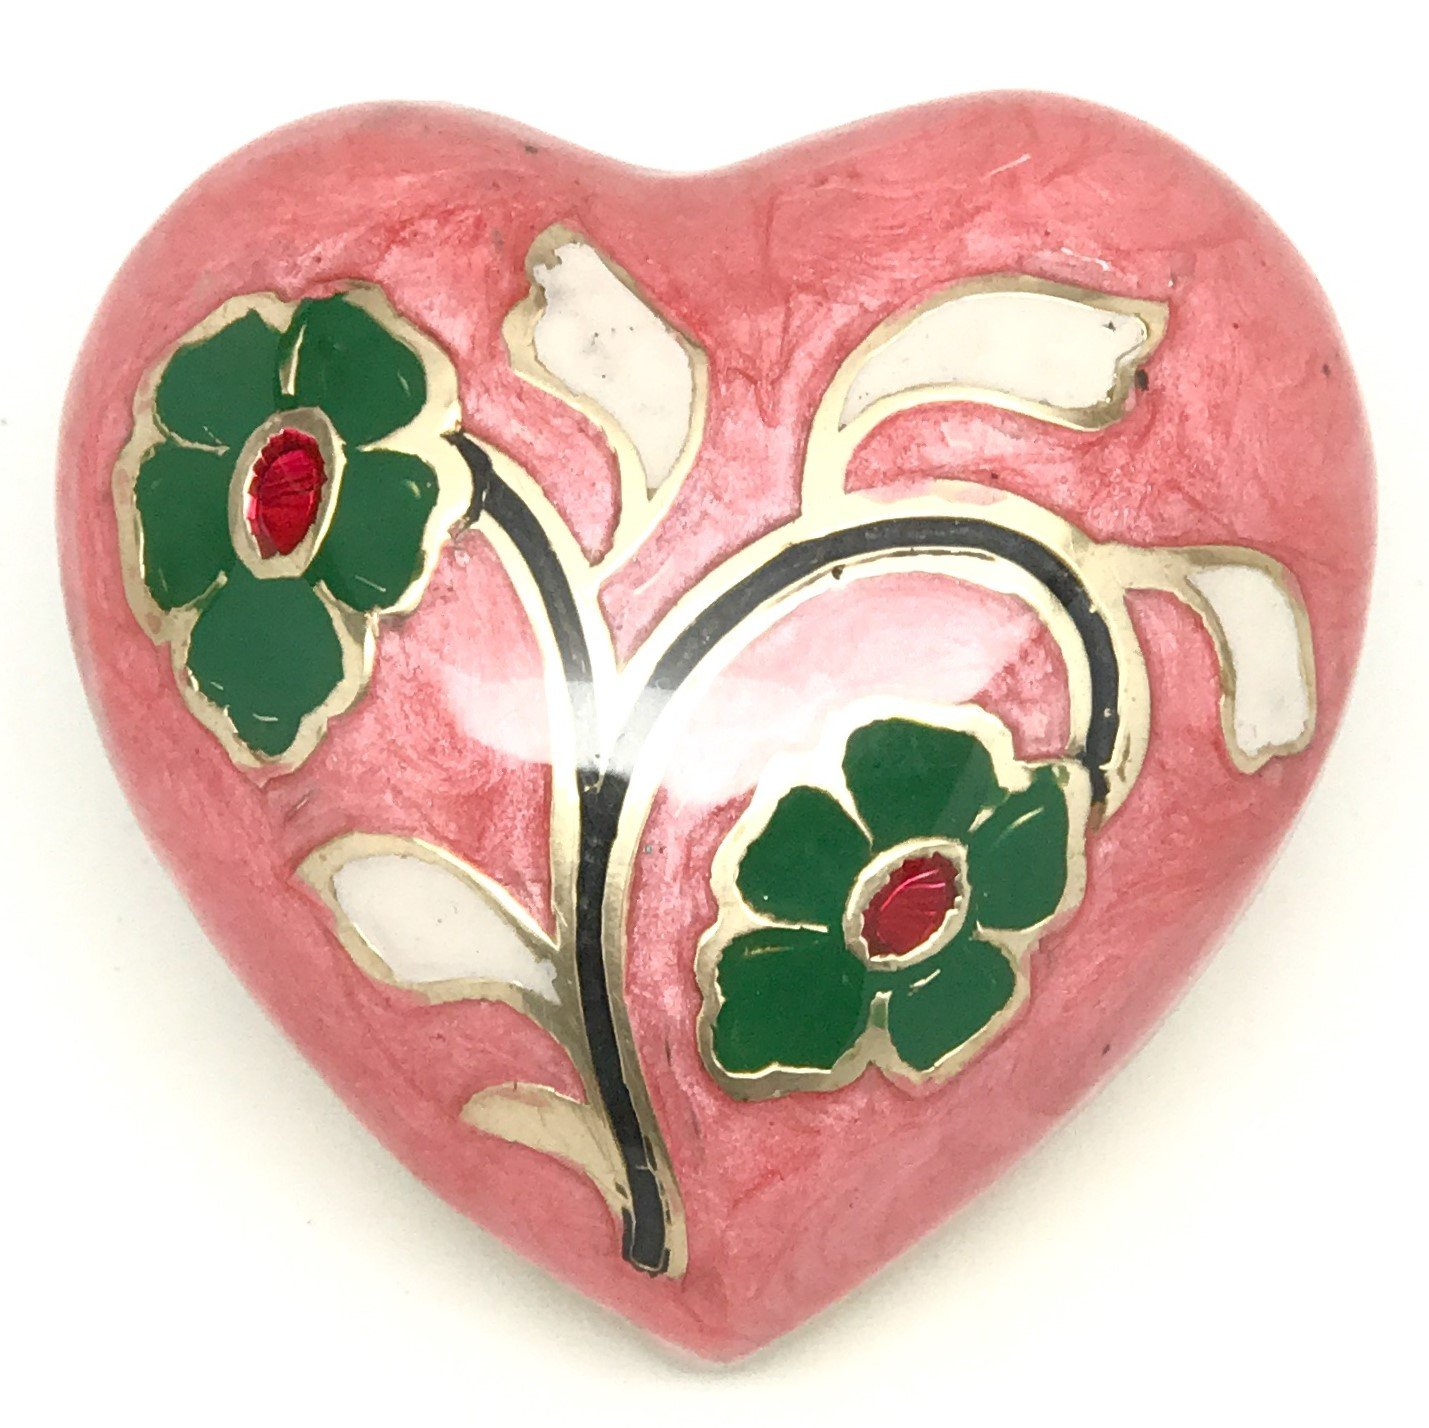 Amazon ansons urns pink heart keepsake urn enameled mini amazon ansons urns pink heart keepsake urn enameled mini flower funeral cremation urn in 5 colors fits small amount of ashes small urn size 3 izmirmasajfo